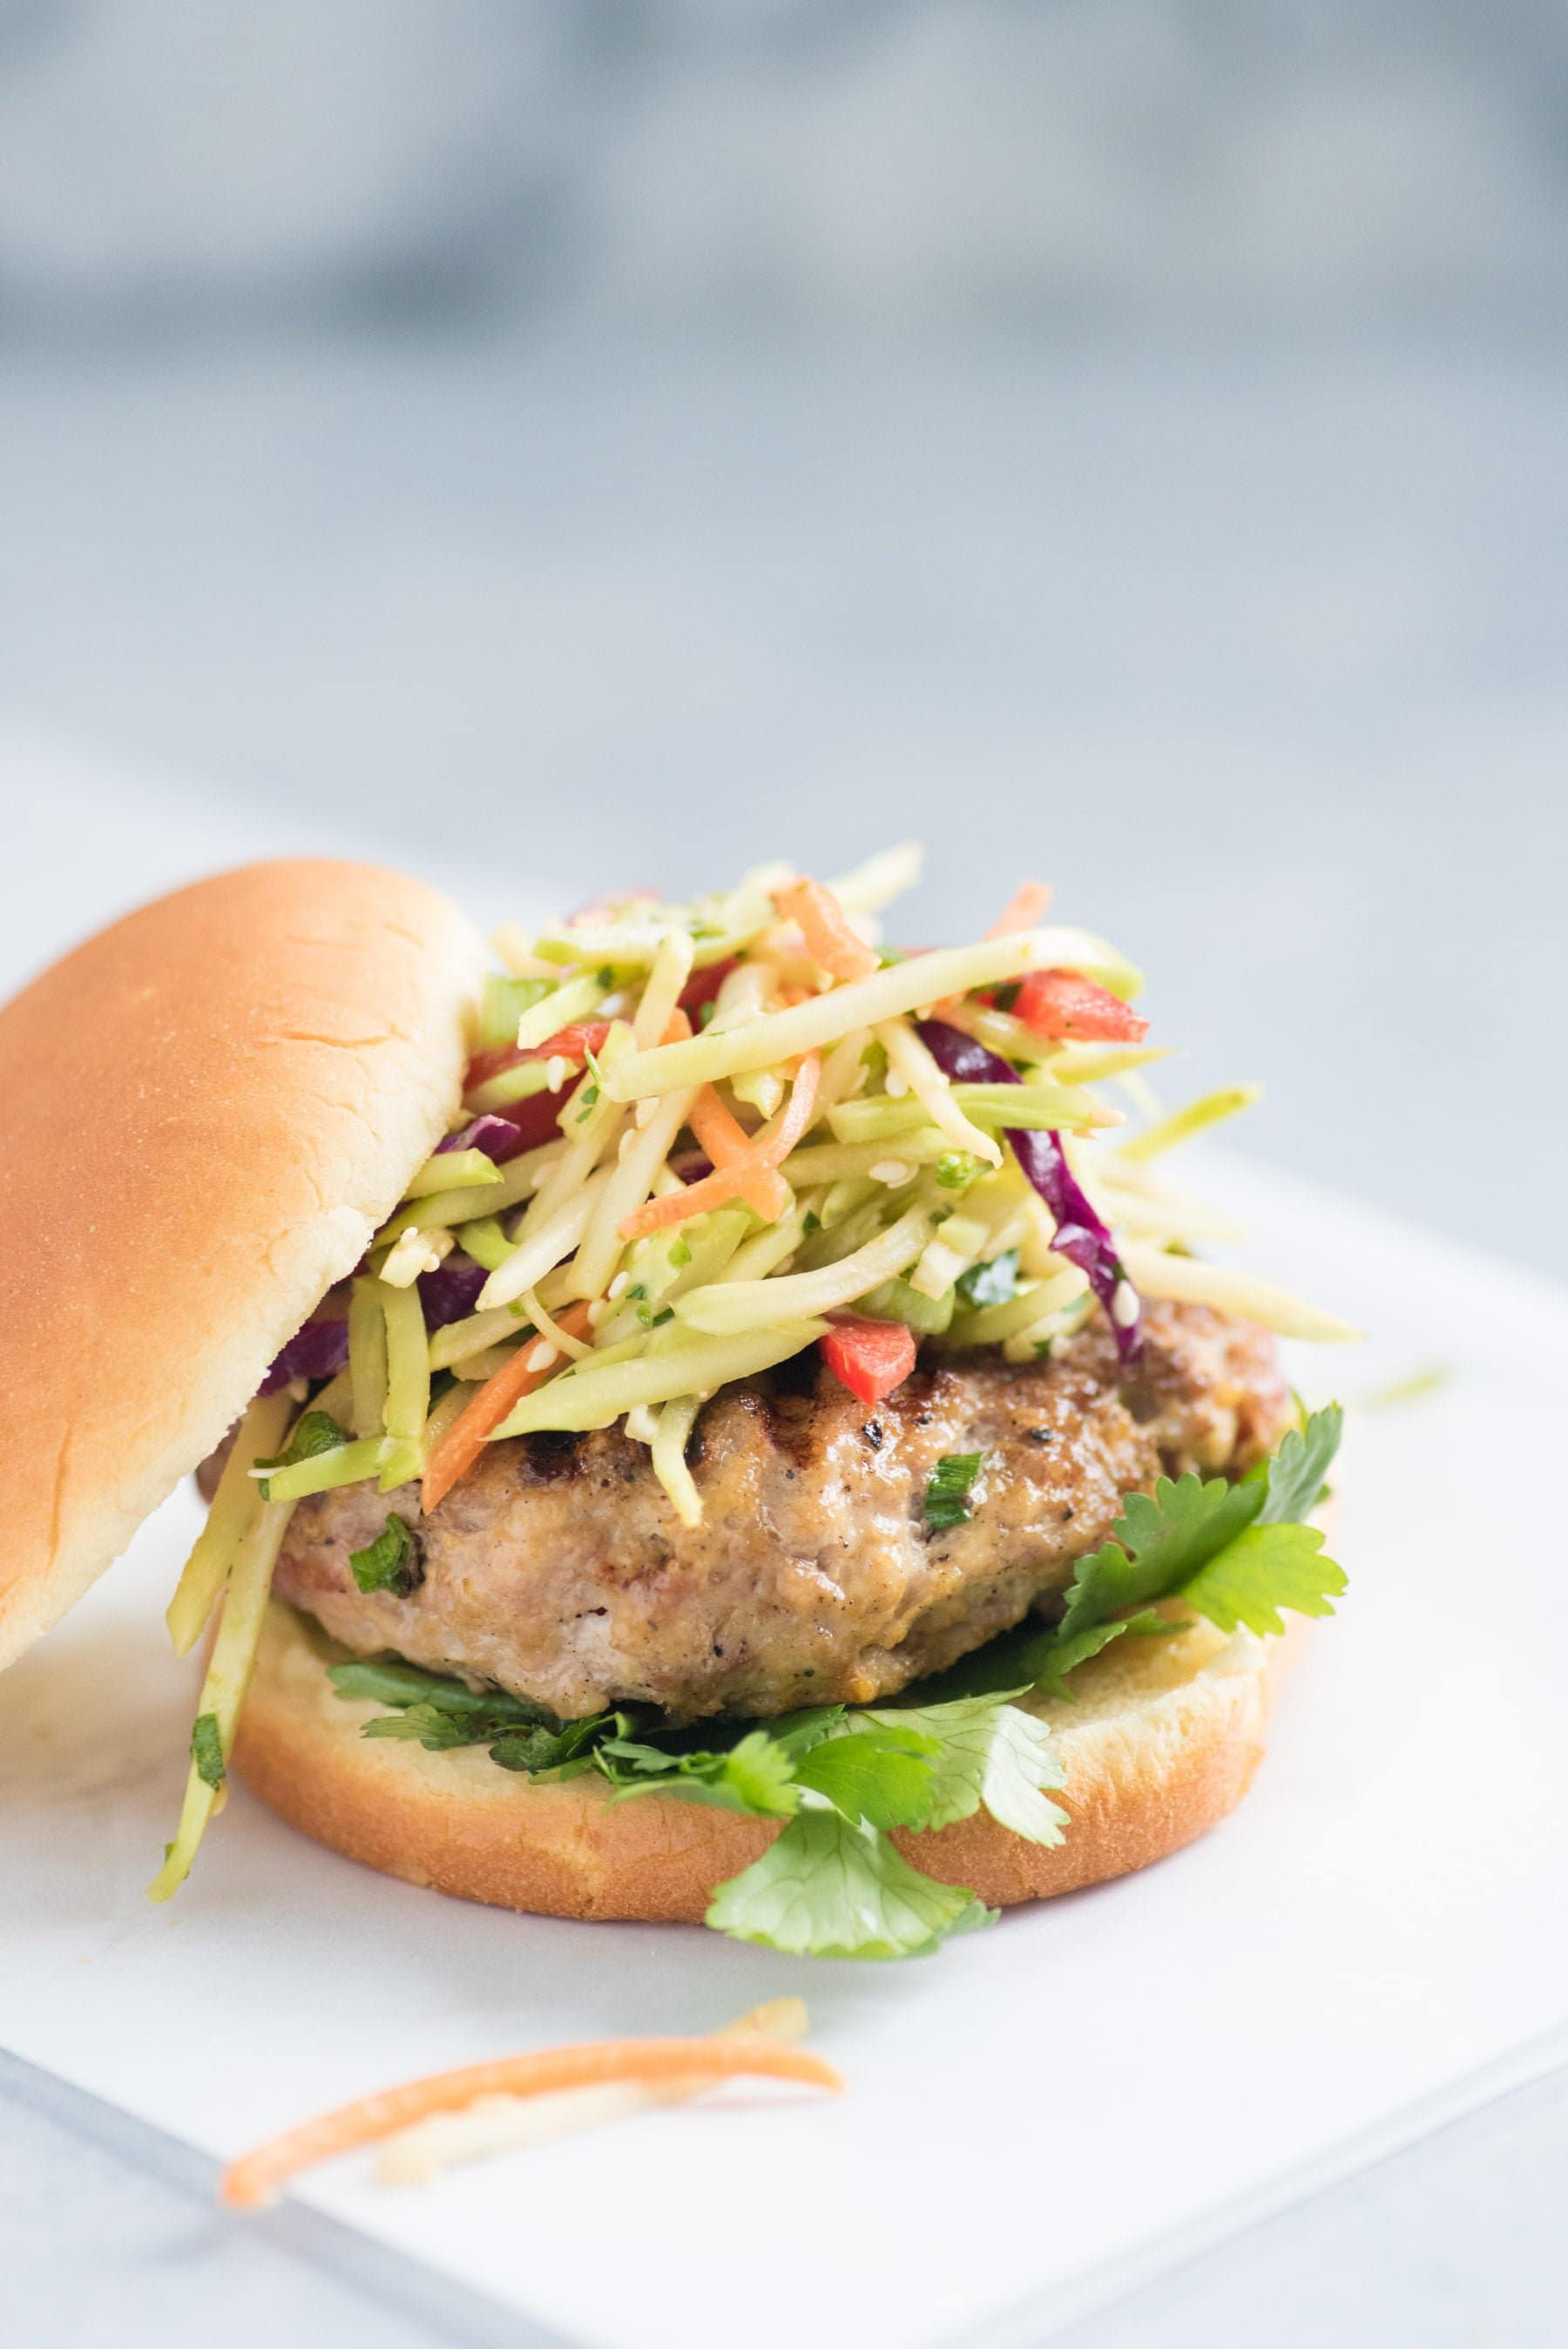 Close up side shot of Asian pork burger with broccoli slaw on top, served on a bun